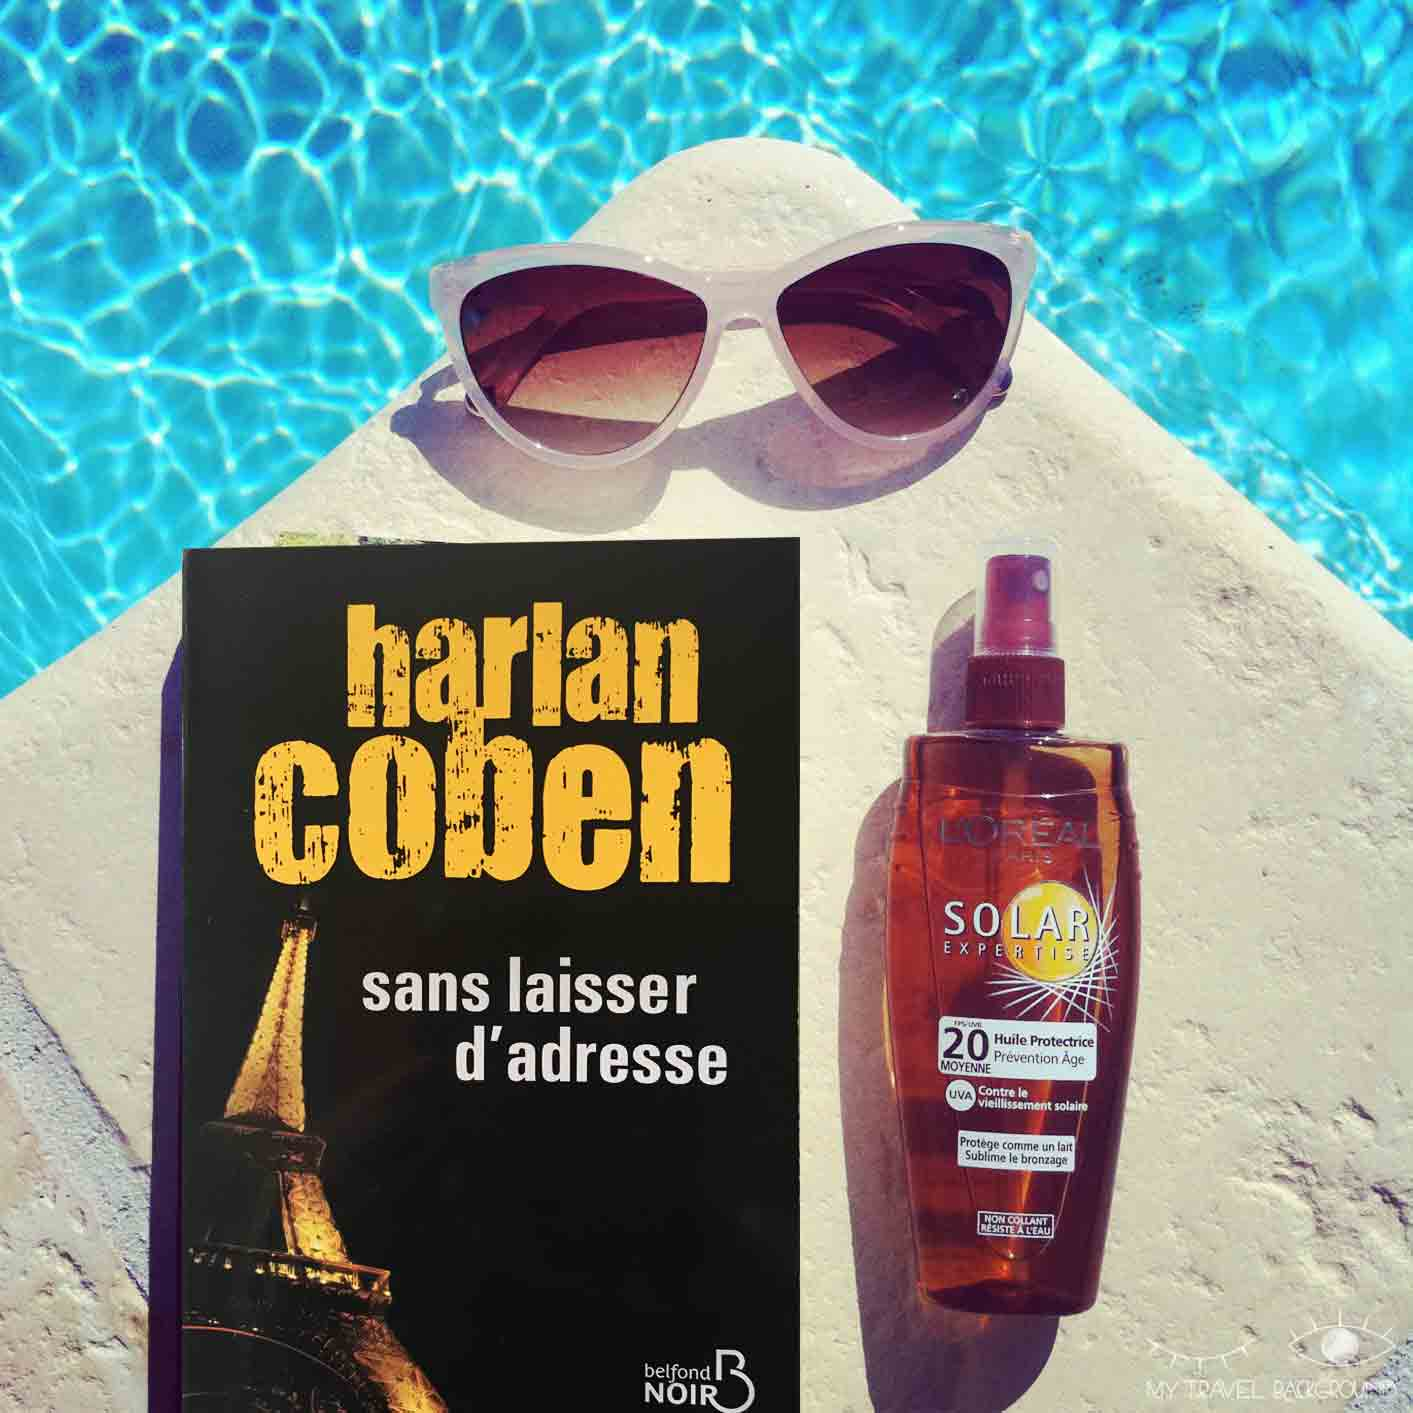 My Travel Background : 9 romans qui vont vous faire voyager, Sans laisser d'adresse, Harlan Coben